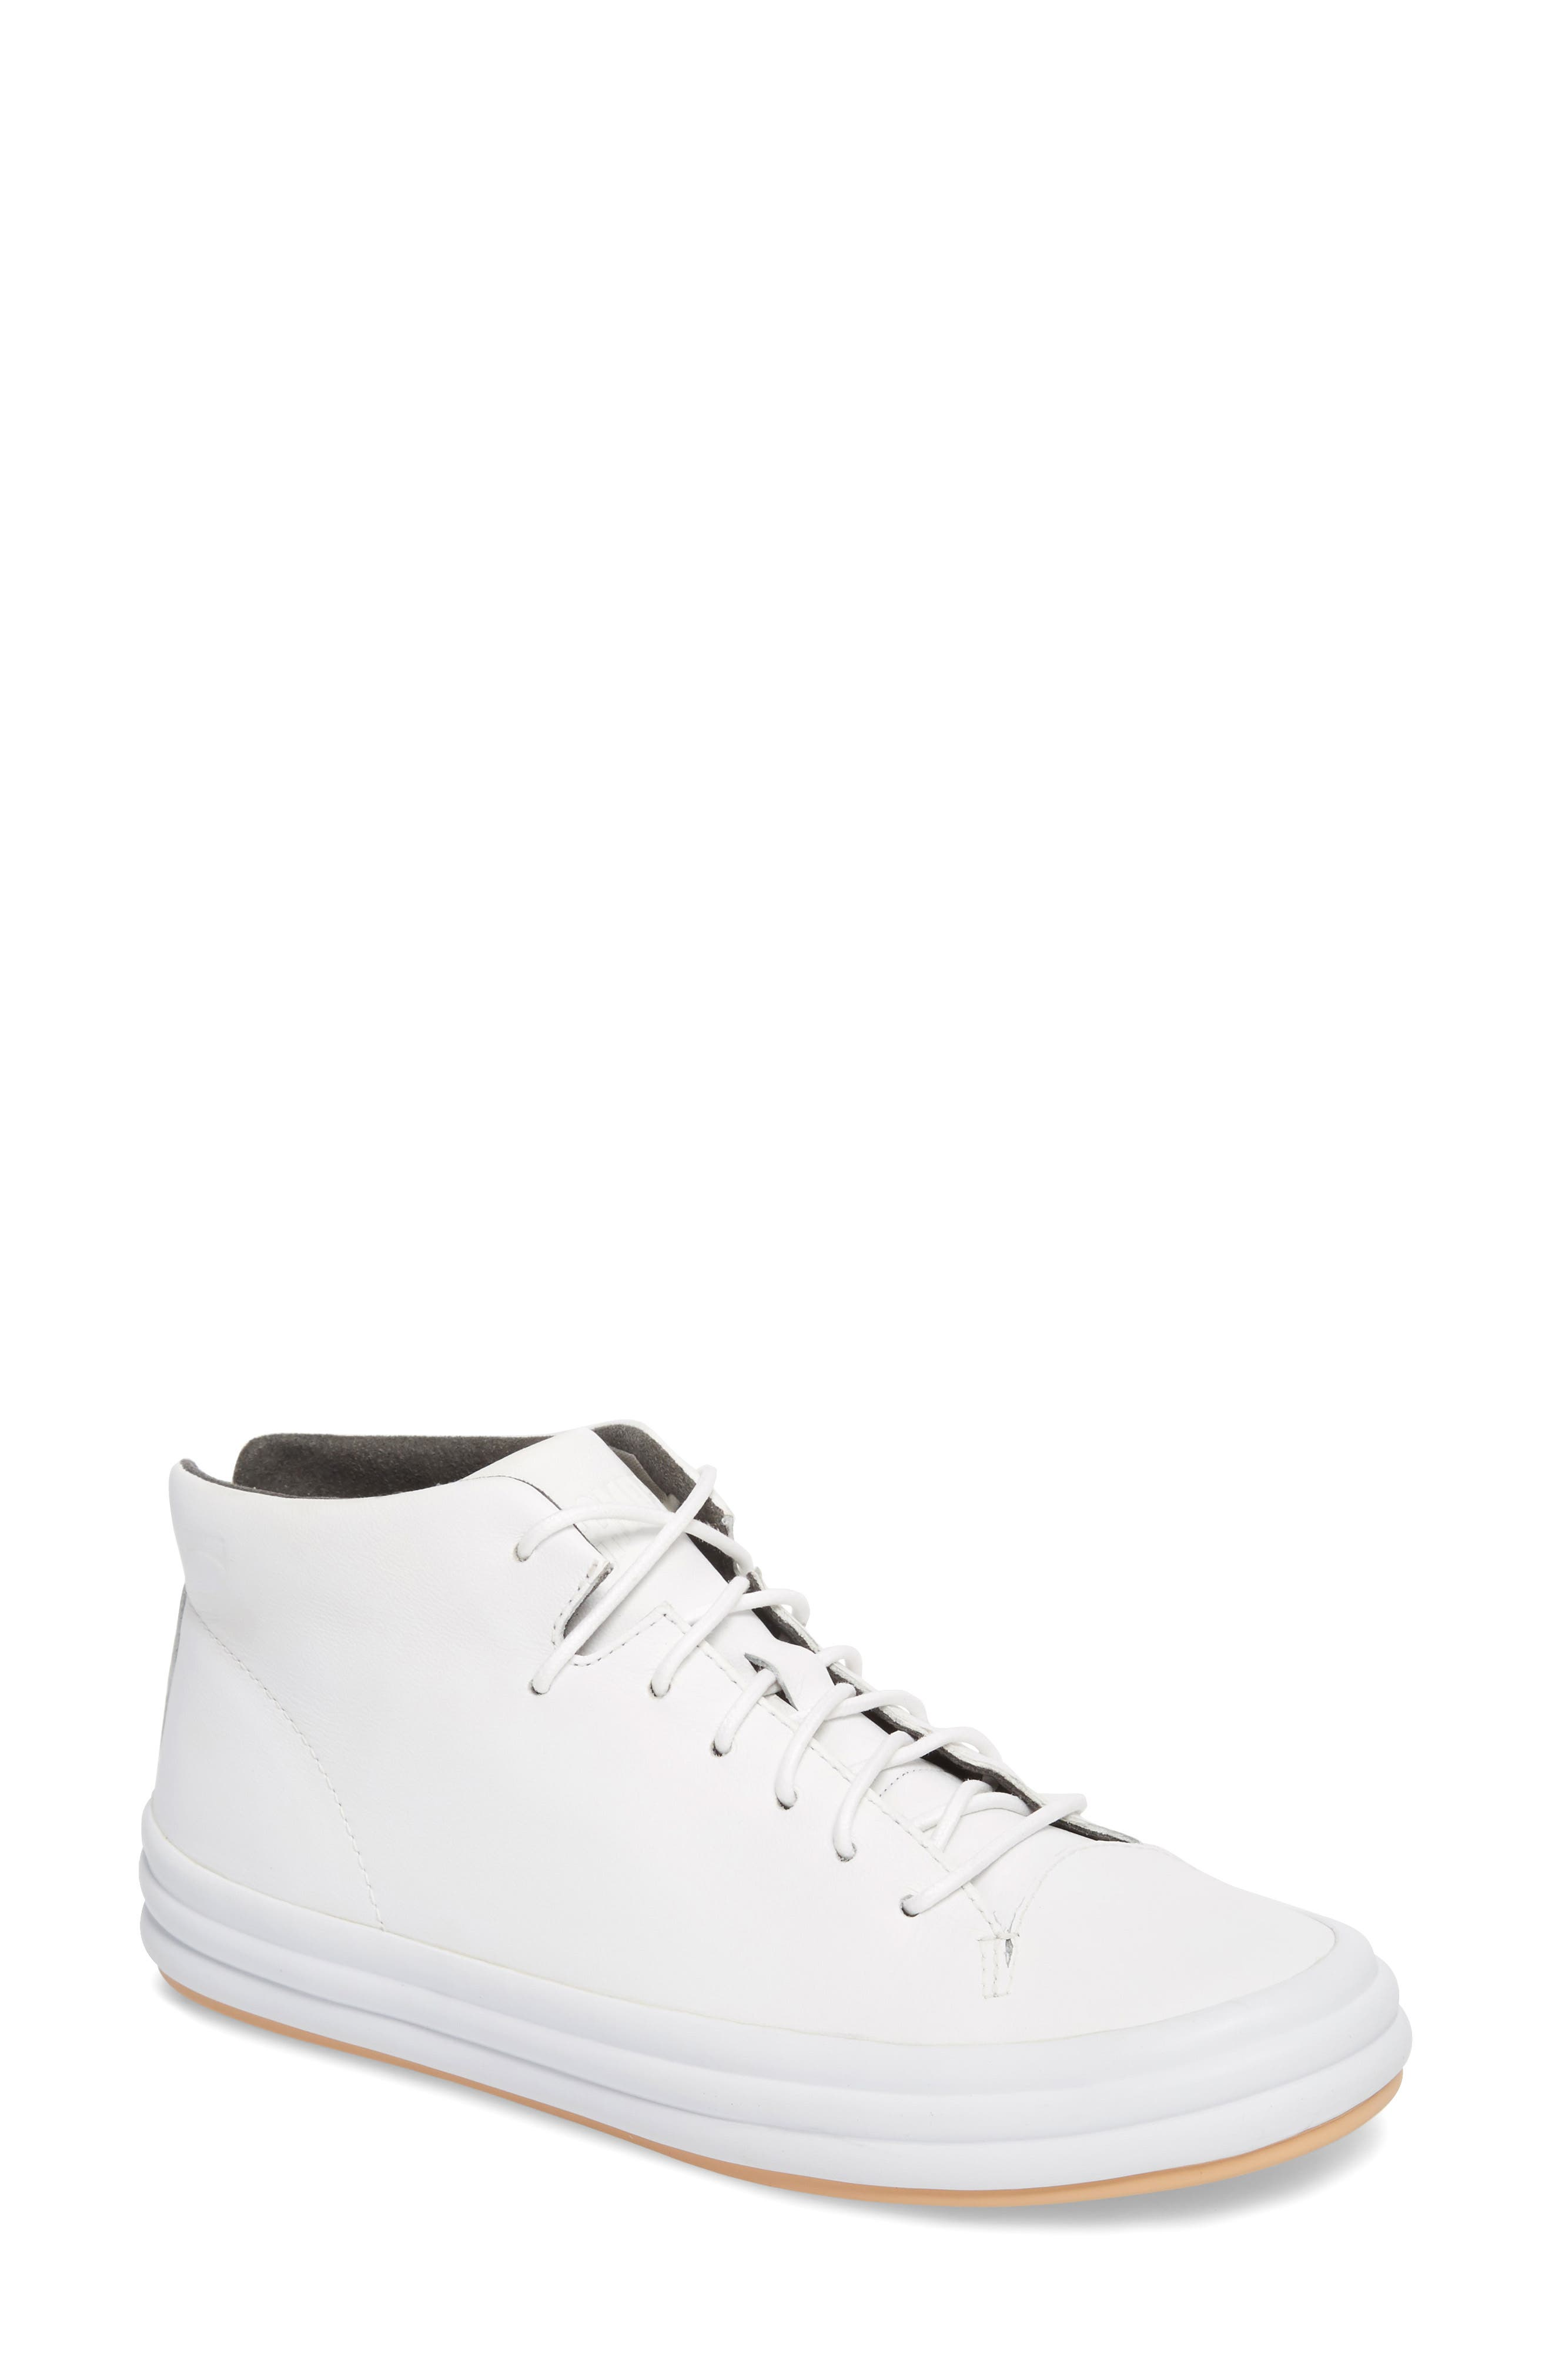 Hoops Mid Top Sneaker,                             Main thumbnail 1, color,                             100